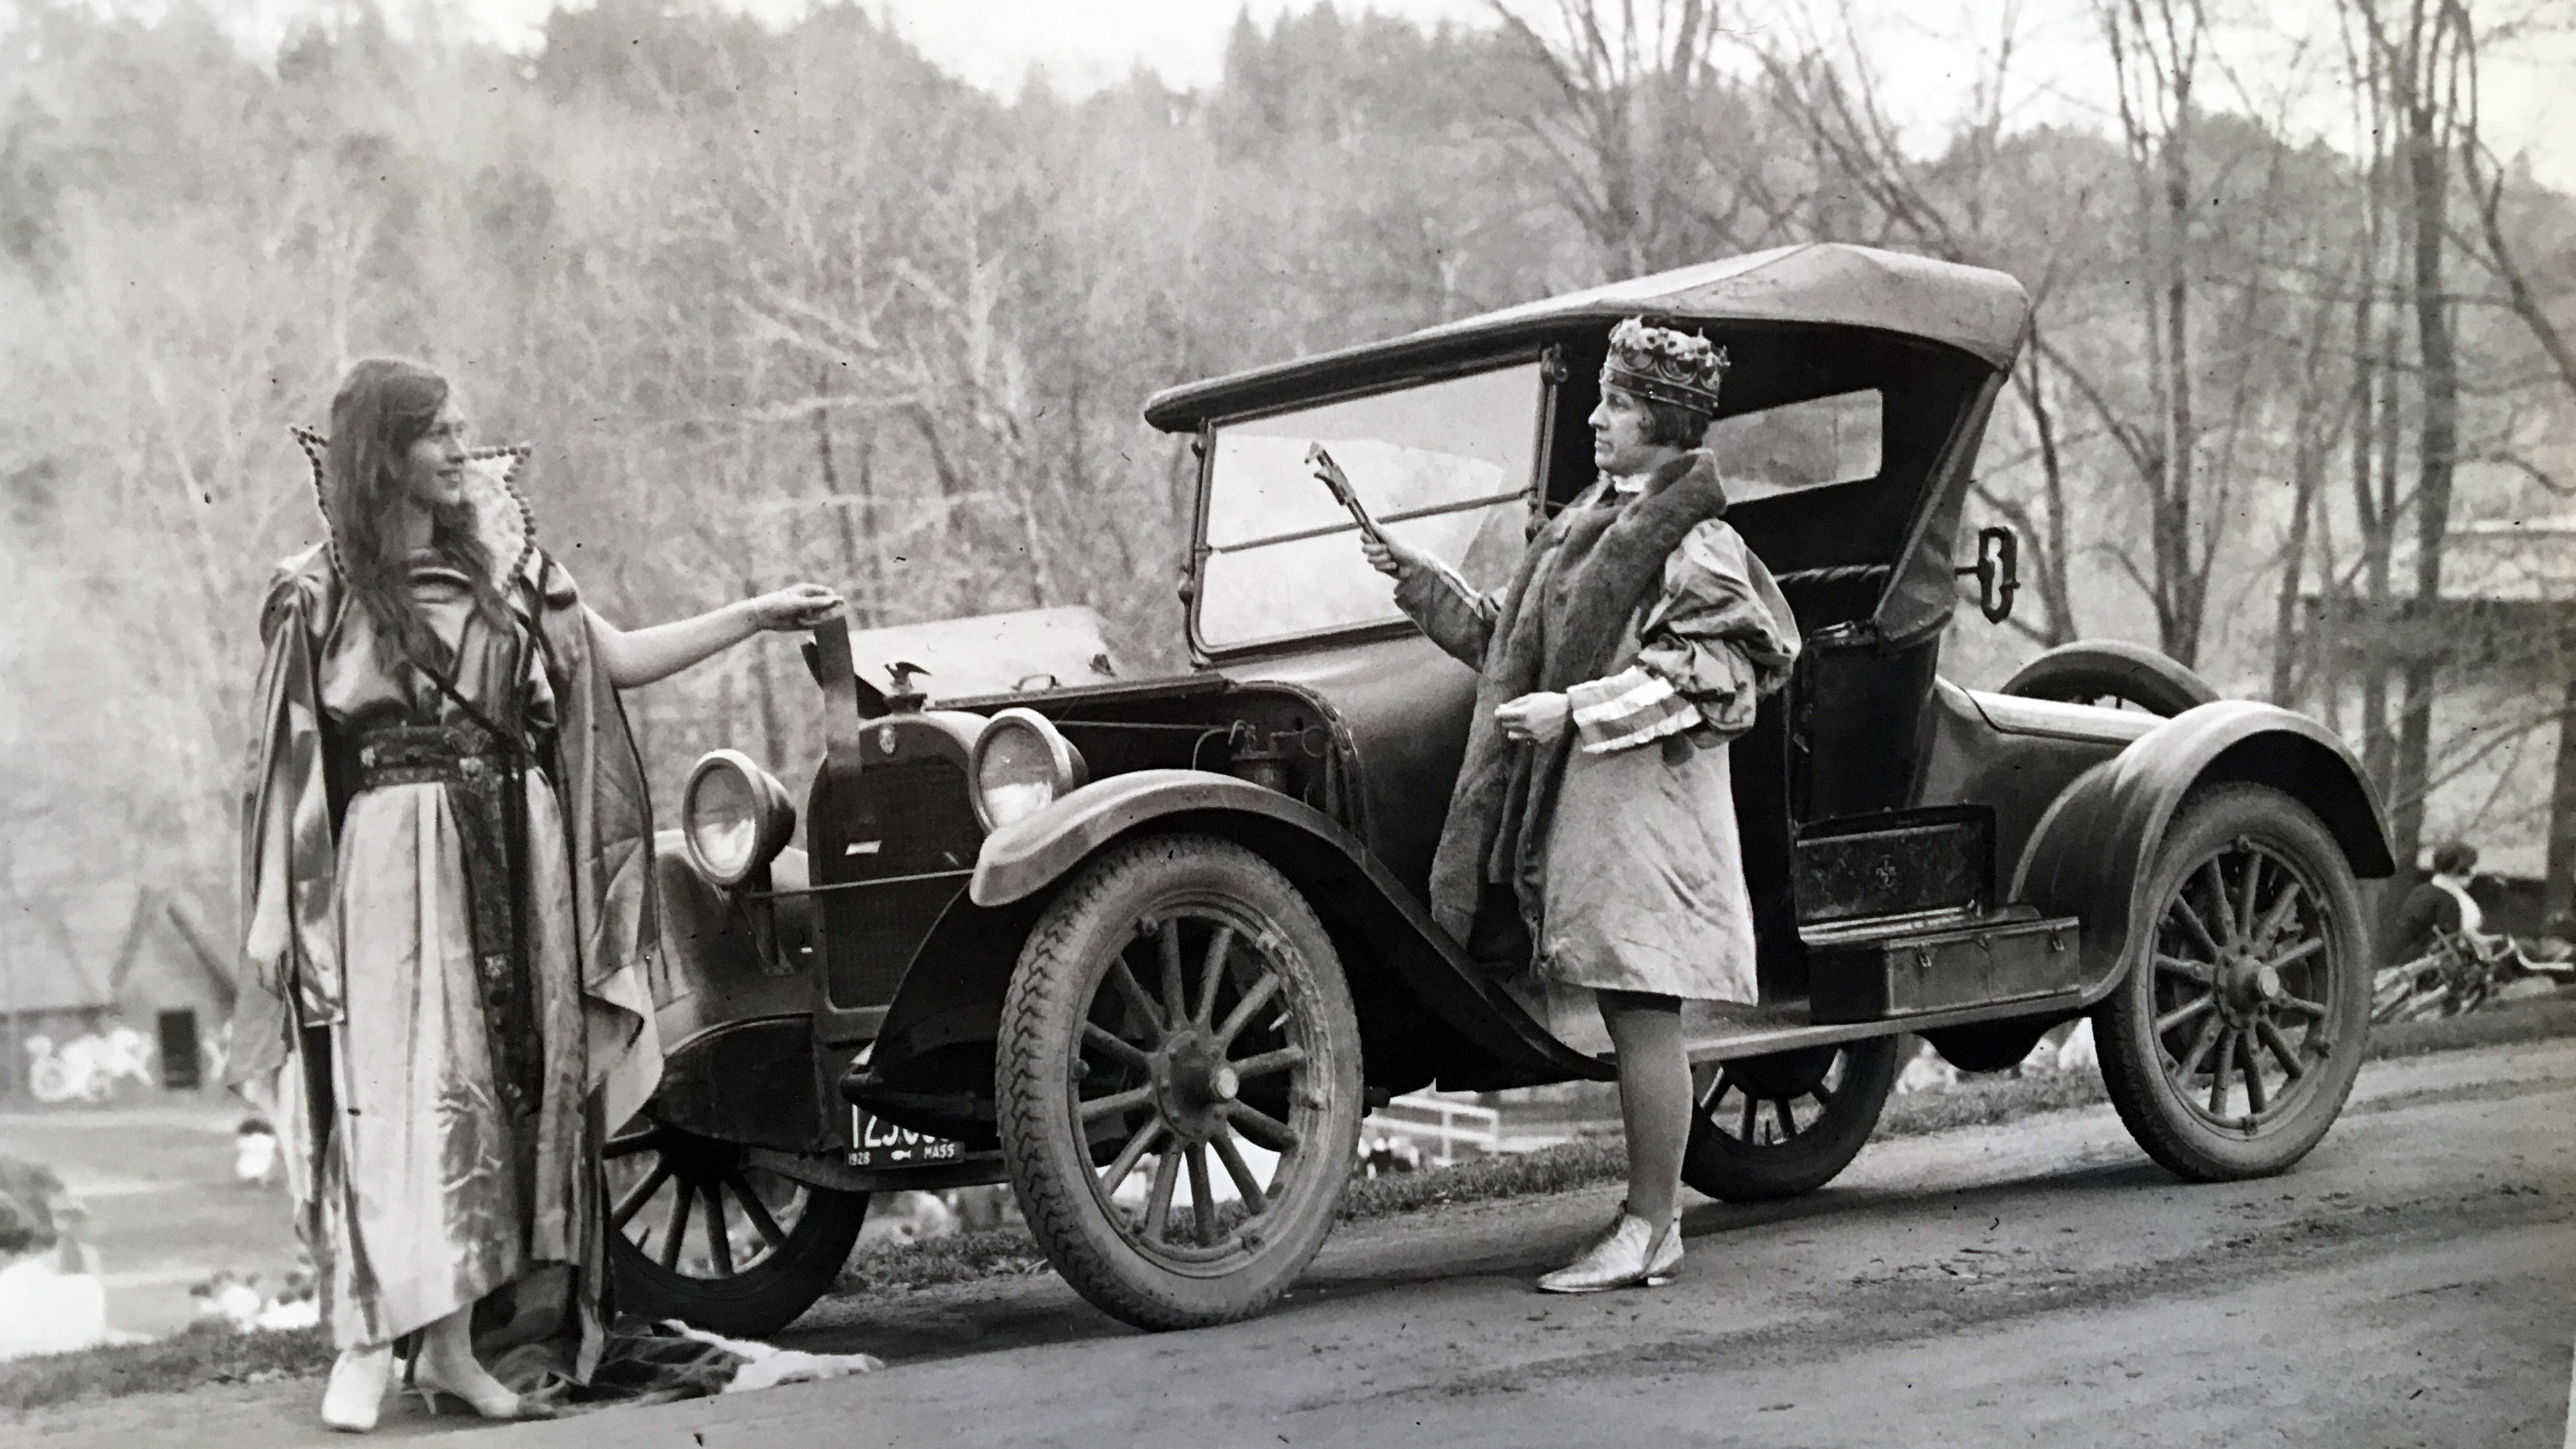 May Day king, queen and car, 1928